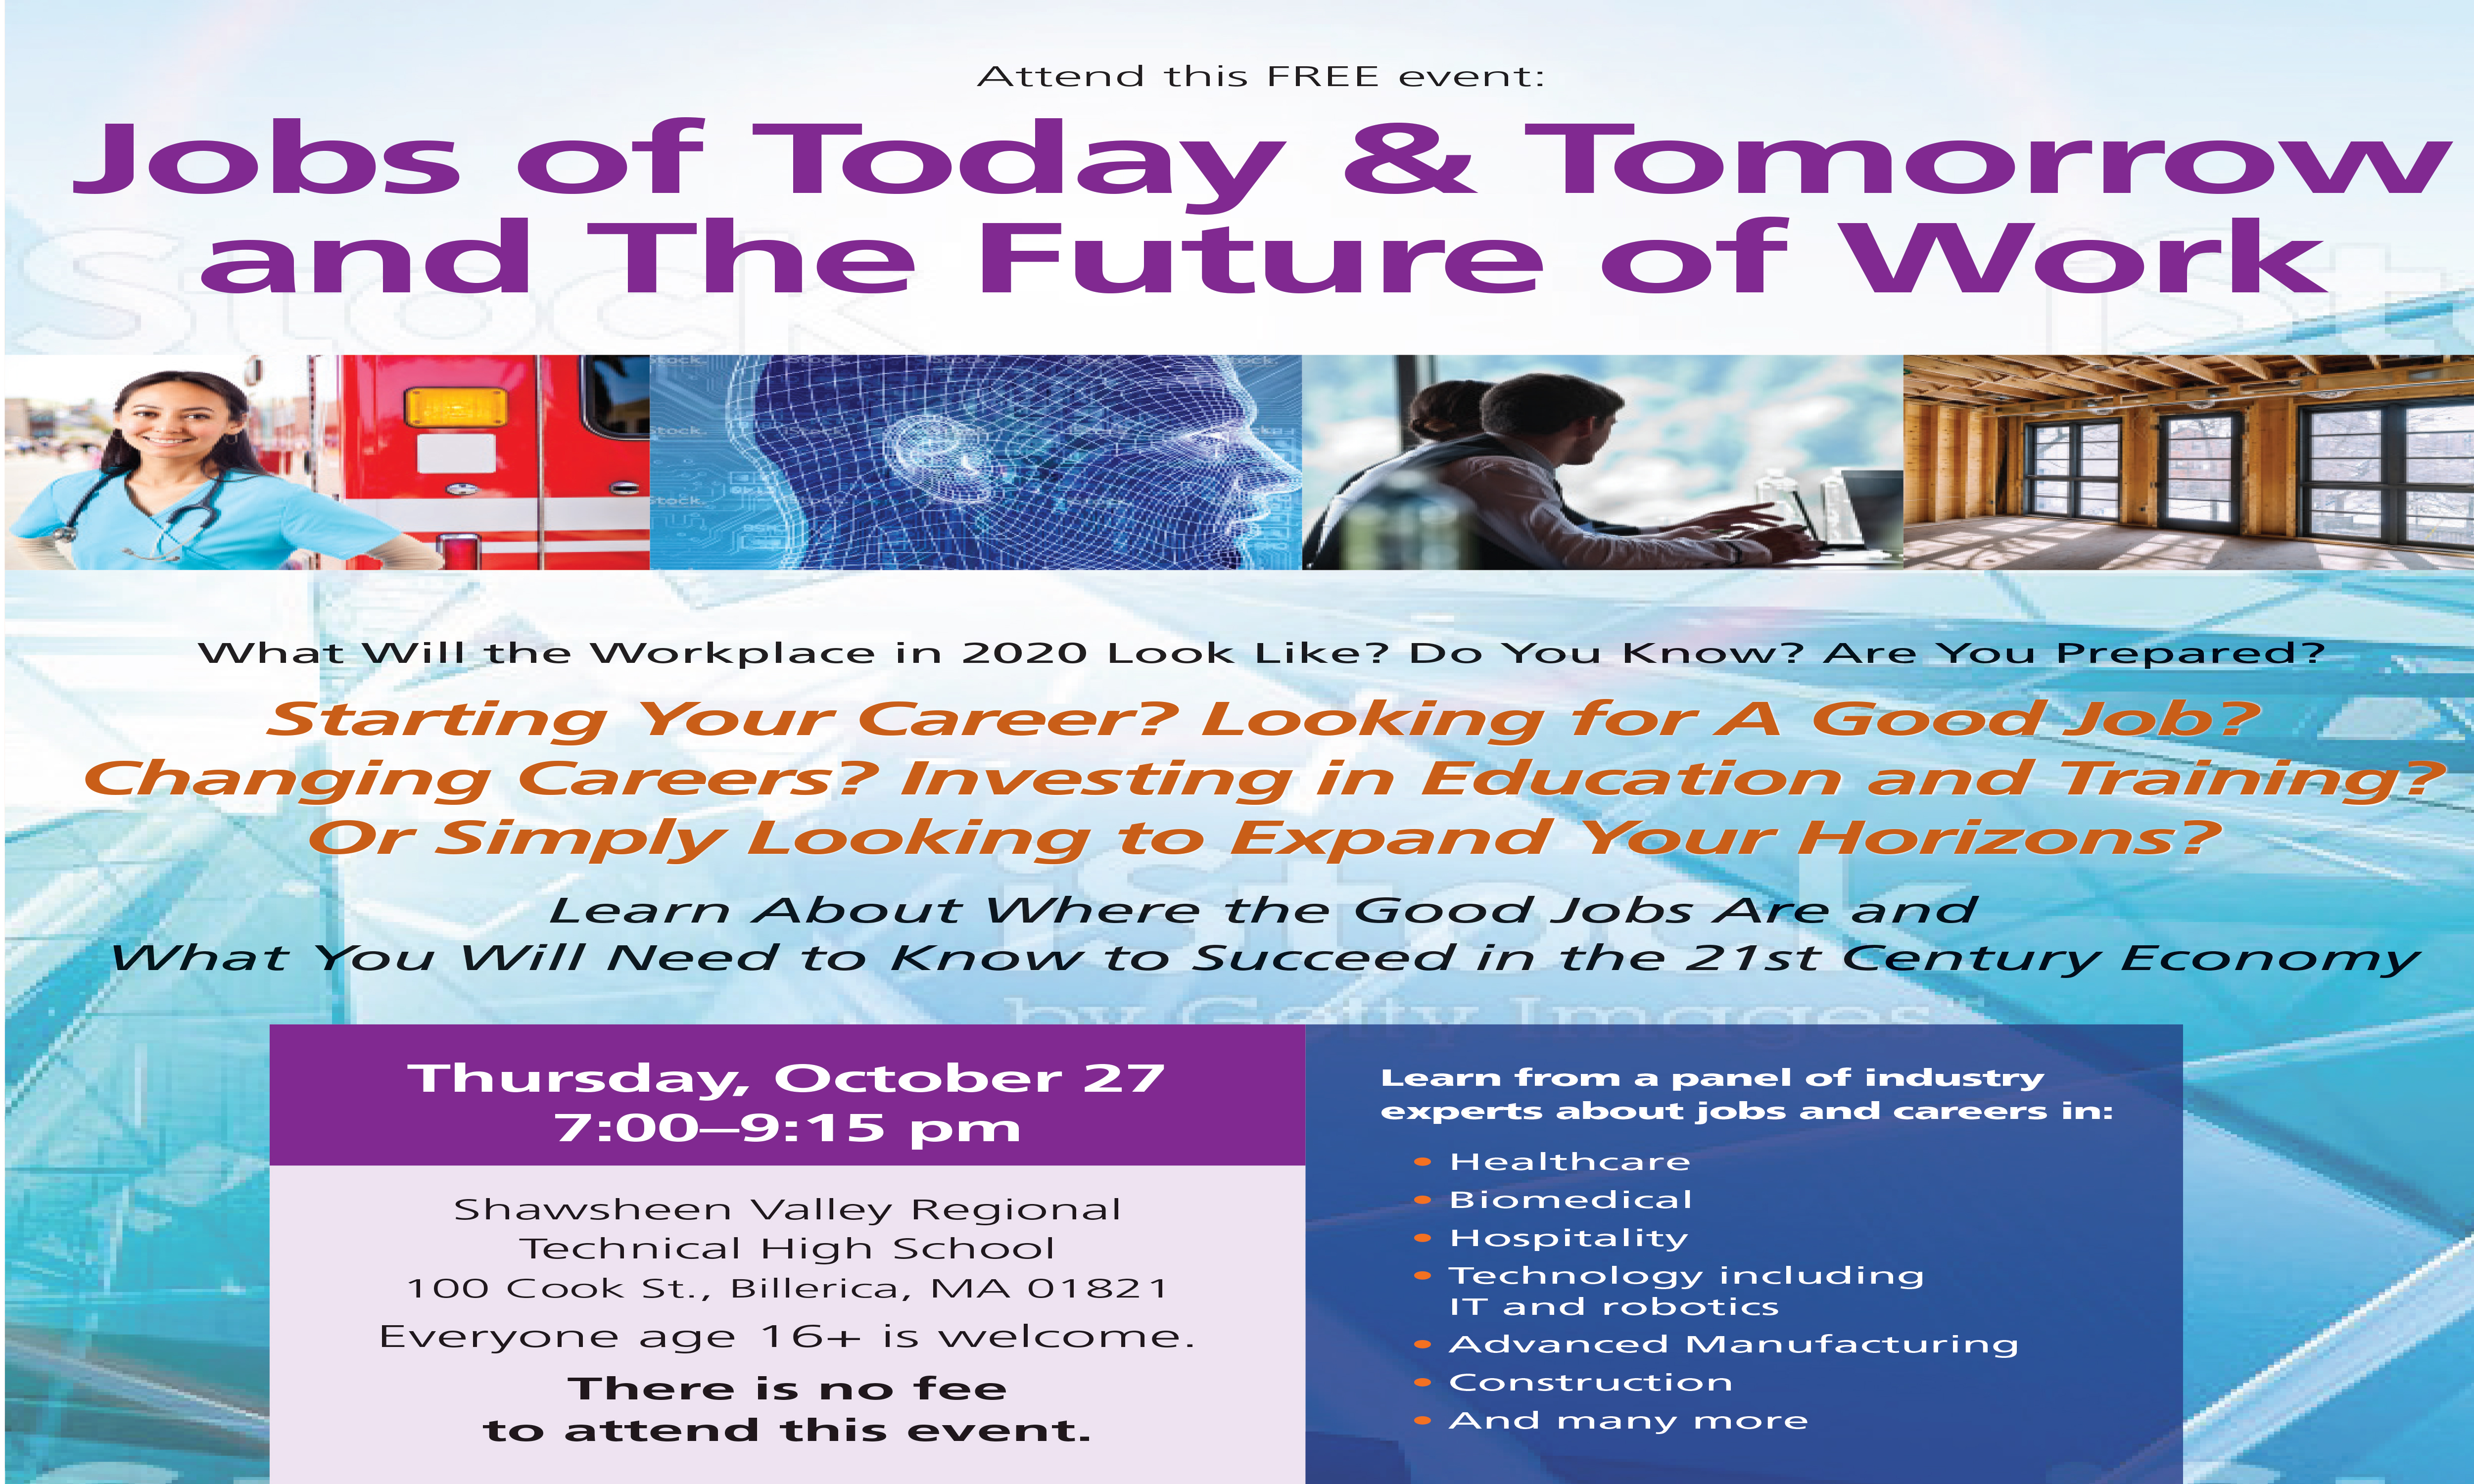 shawsheen jpg what will the workplace in 2020 look like do you know are you prepared starting your career looking for a good job changing careers